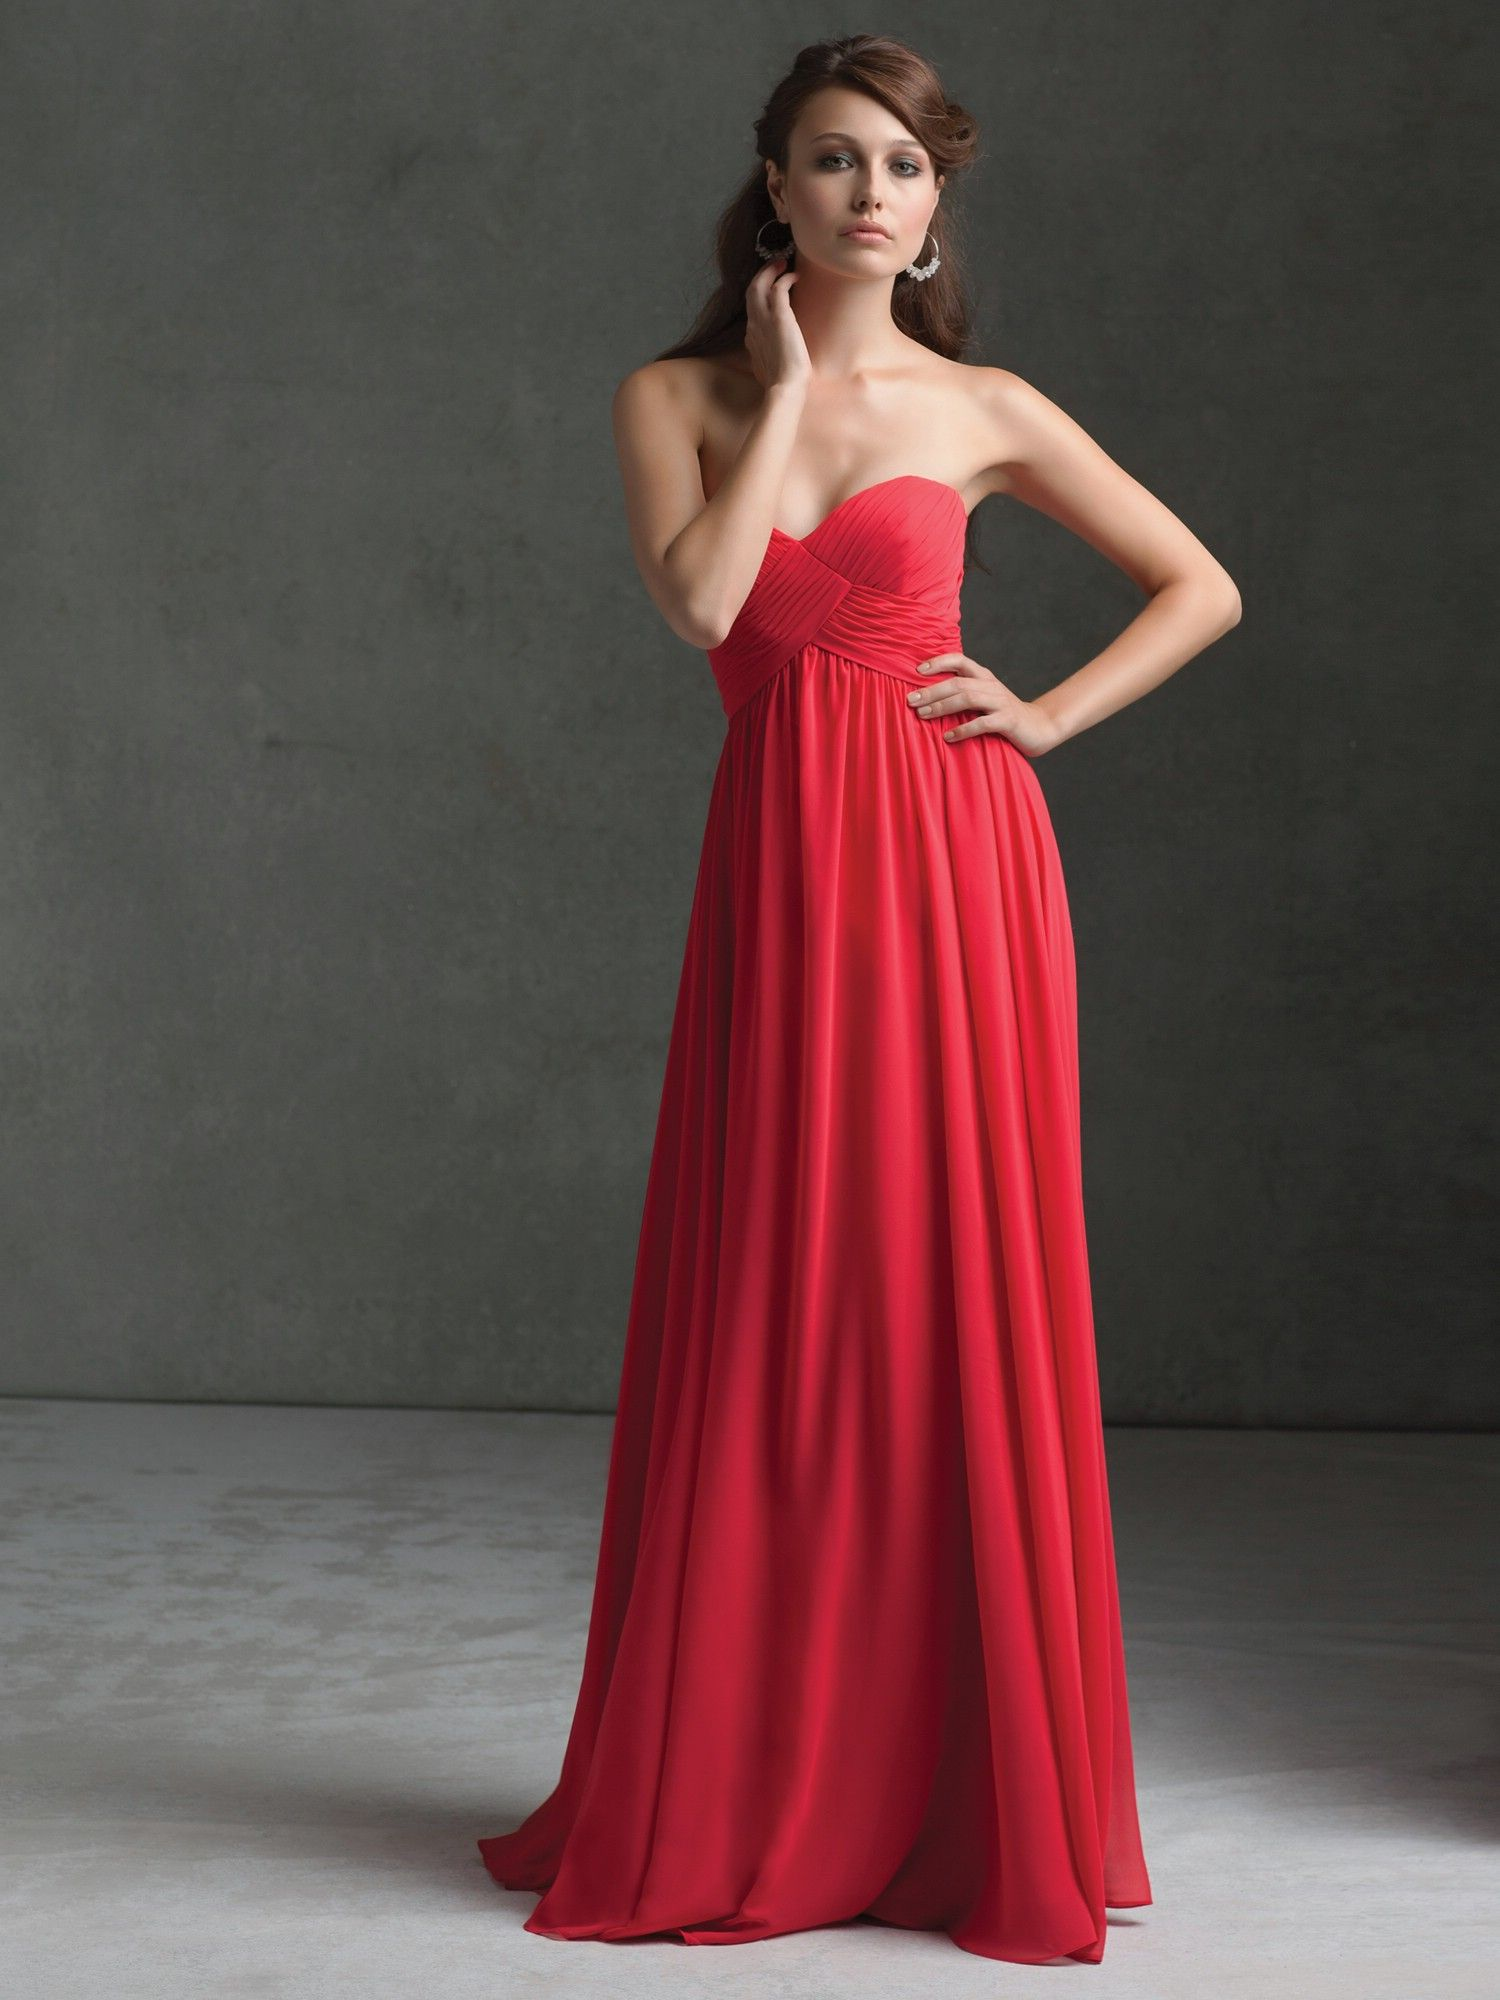 2013 mori lee bridesmaid dresses style 671 style selected but 2013 mori lee bridesmaid dresses style 671 style selected but in cantaloupe or poppy ombrellifo Gallery